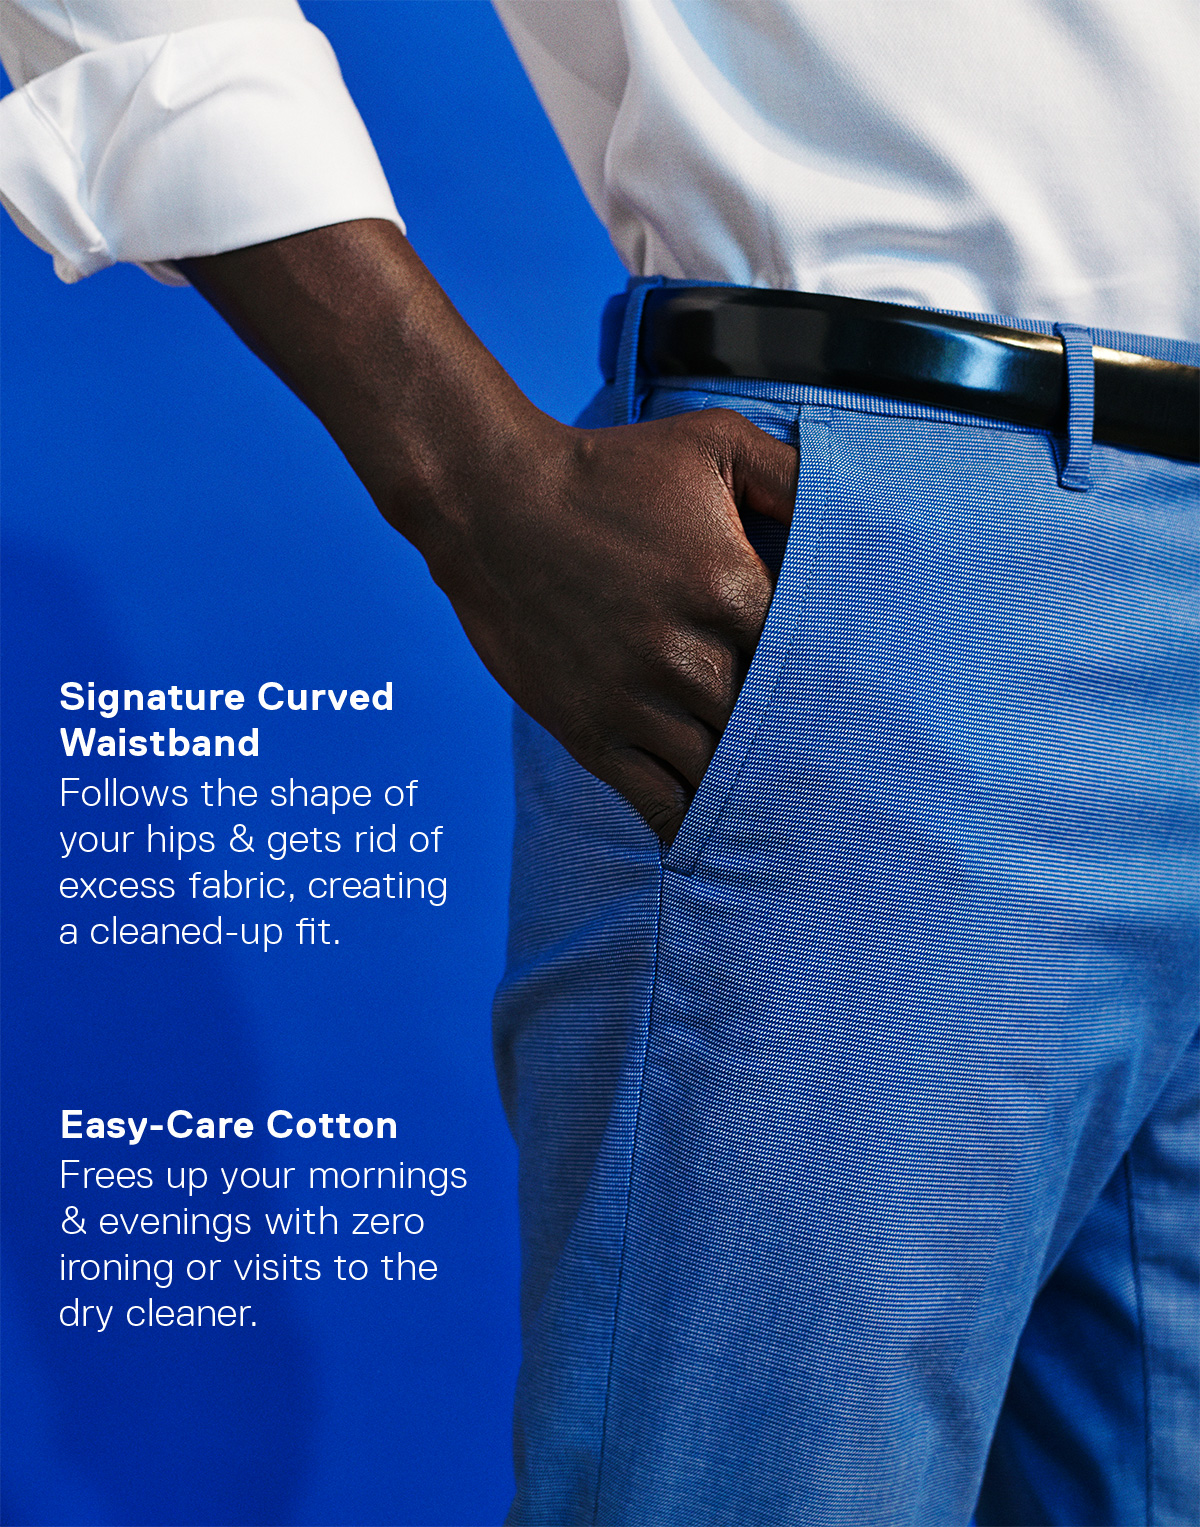 Easy-Care Cotton: Frees up your mornings & evenings with zero ironing or visits to the dry cleaner.  //  Signature Curved Waistband: Follows the shape of your hips & gets rid of excess fabric, creating a cleaned-up fit.